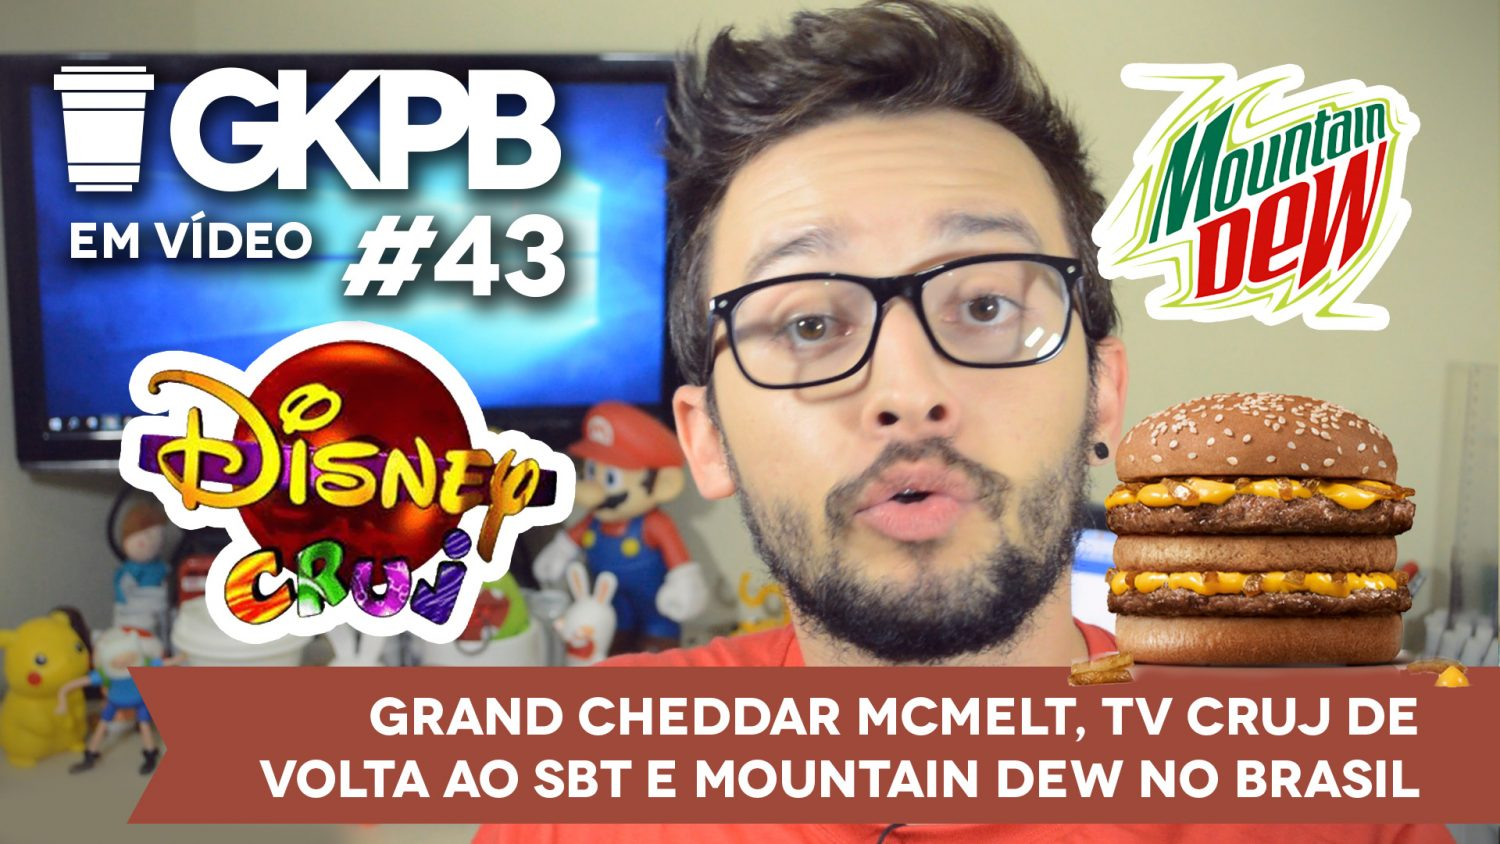 gkpb-em-video-43-grand-cheddar-mcmelt-tv-cruj-volta-sbt-mountain-dew-no-brasil-blog-geek-publicitario